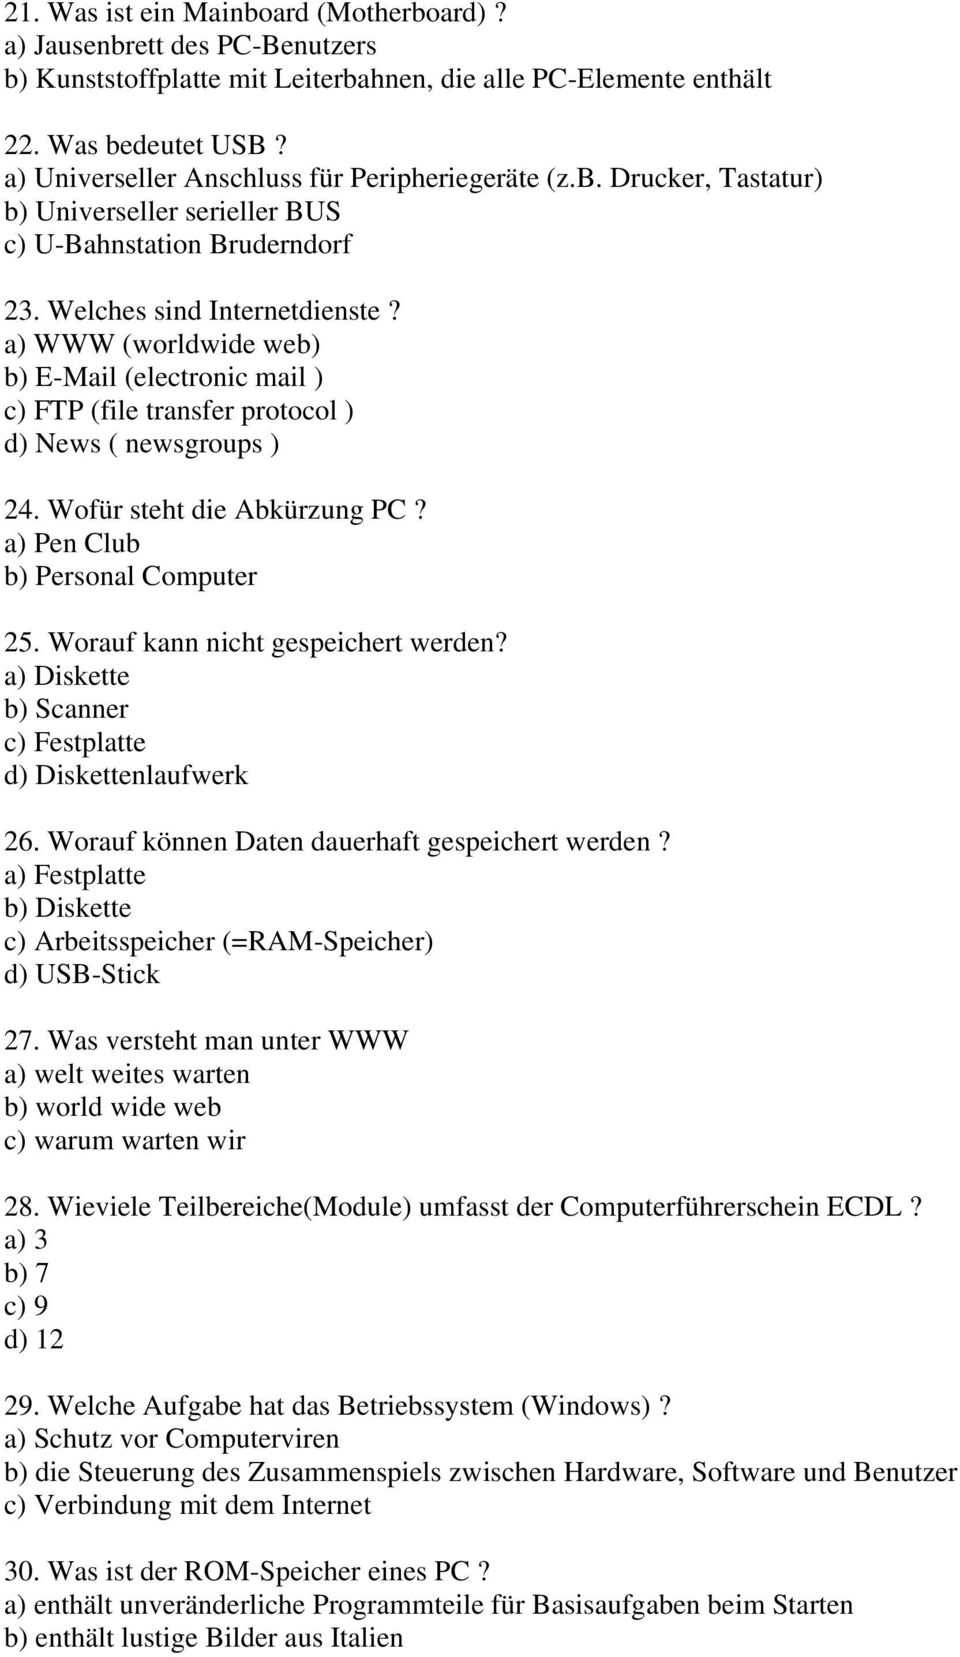 a) WWW (worldwide web) b) E-Mail (electronic mail ) c) FTP (file transfer protocol ) d) News ( newsgroups ) 24. Wofür steht die Abkürzung PC? a) Pen Club b) Personal Computer 25.